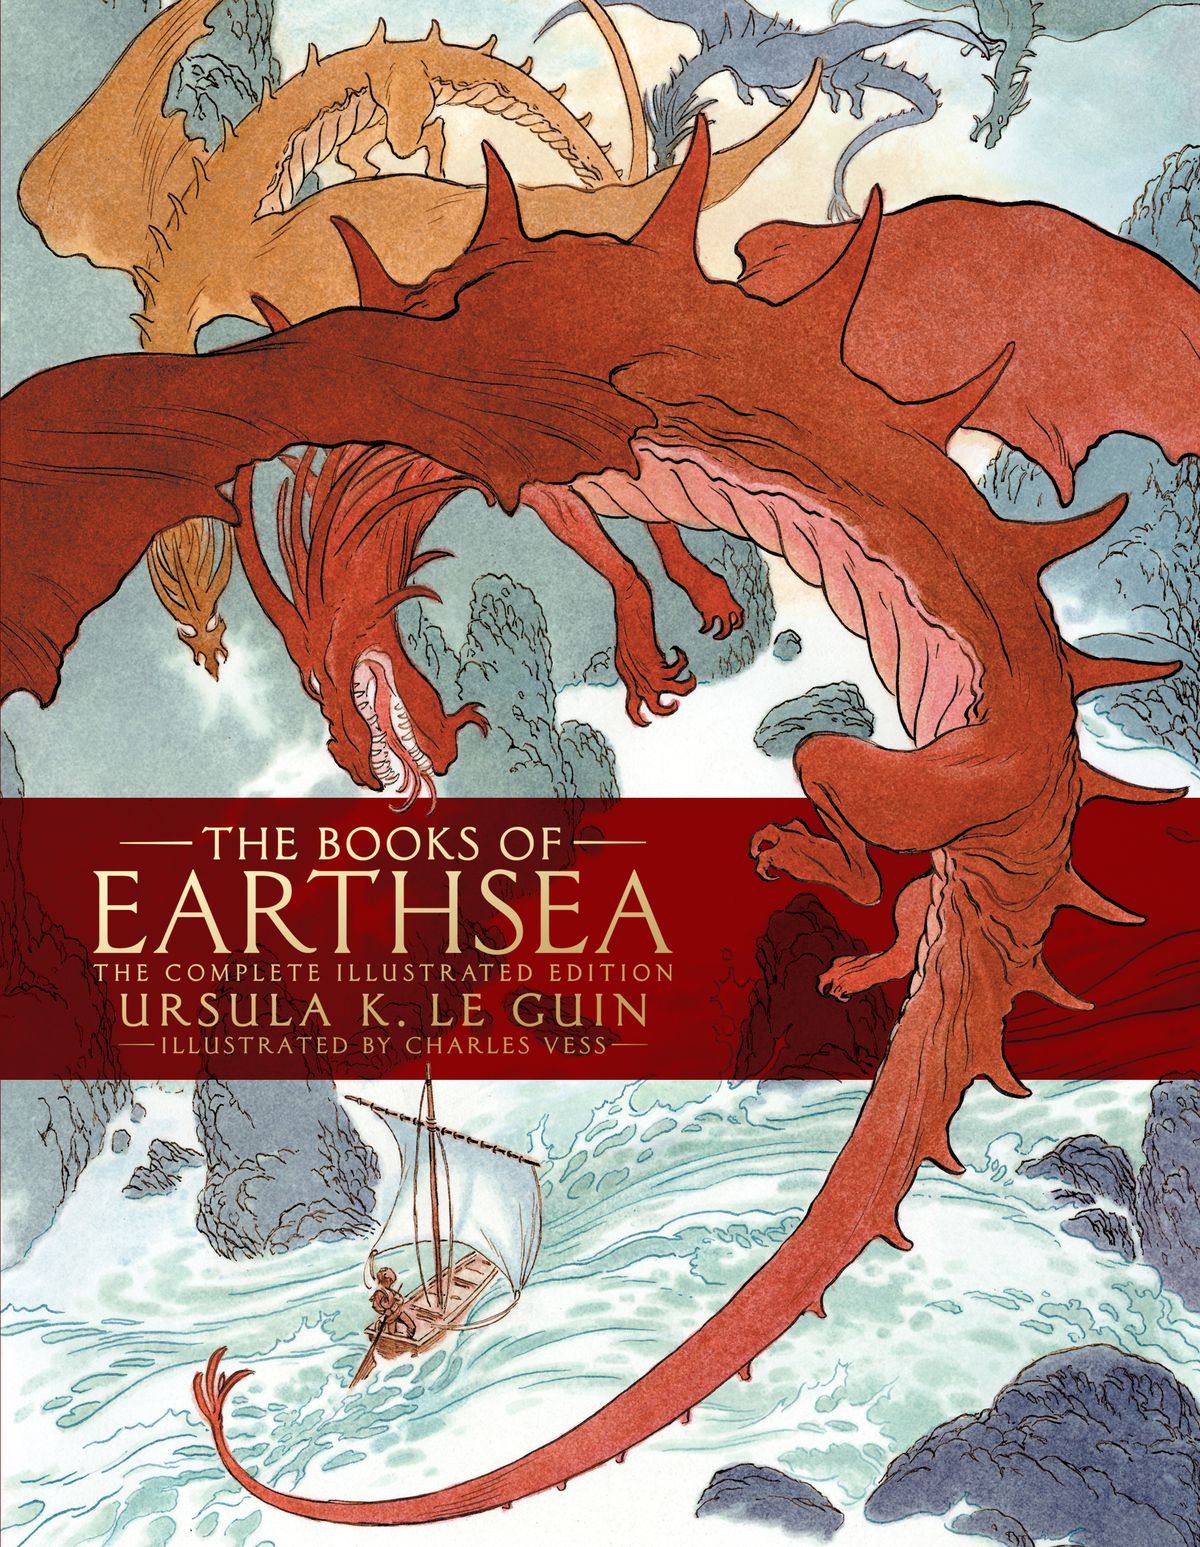 Image result for This Illustrated Collection Of Ursula K. LeGuin's Earthsea Books Finally Does The Series Justice